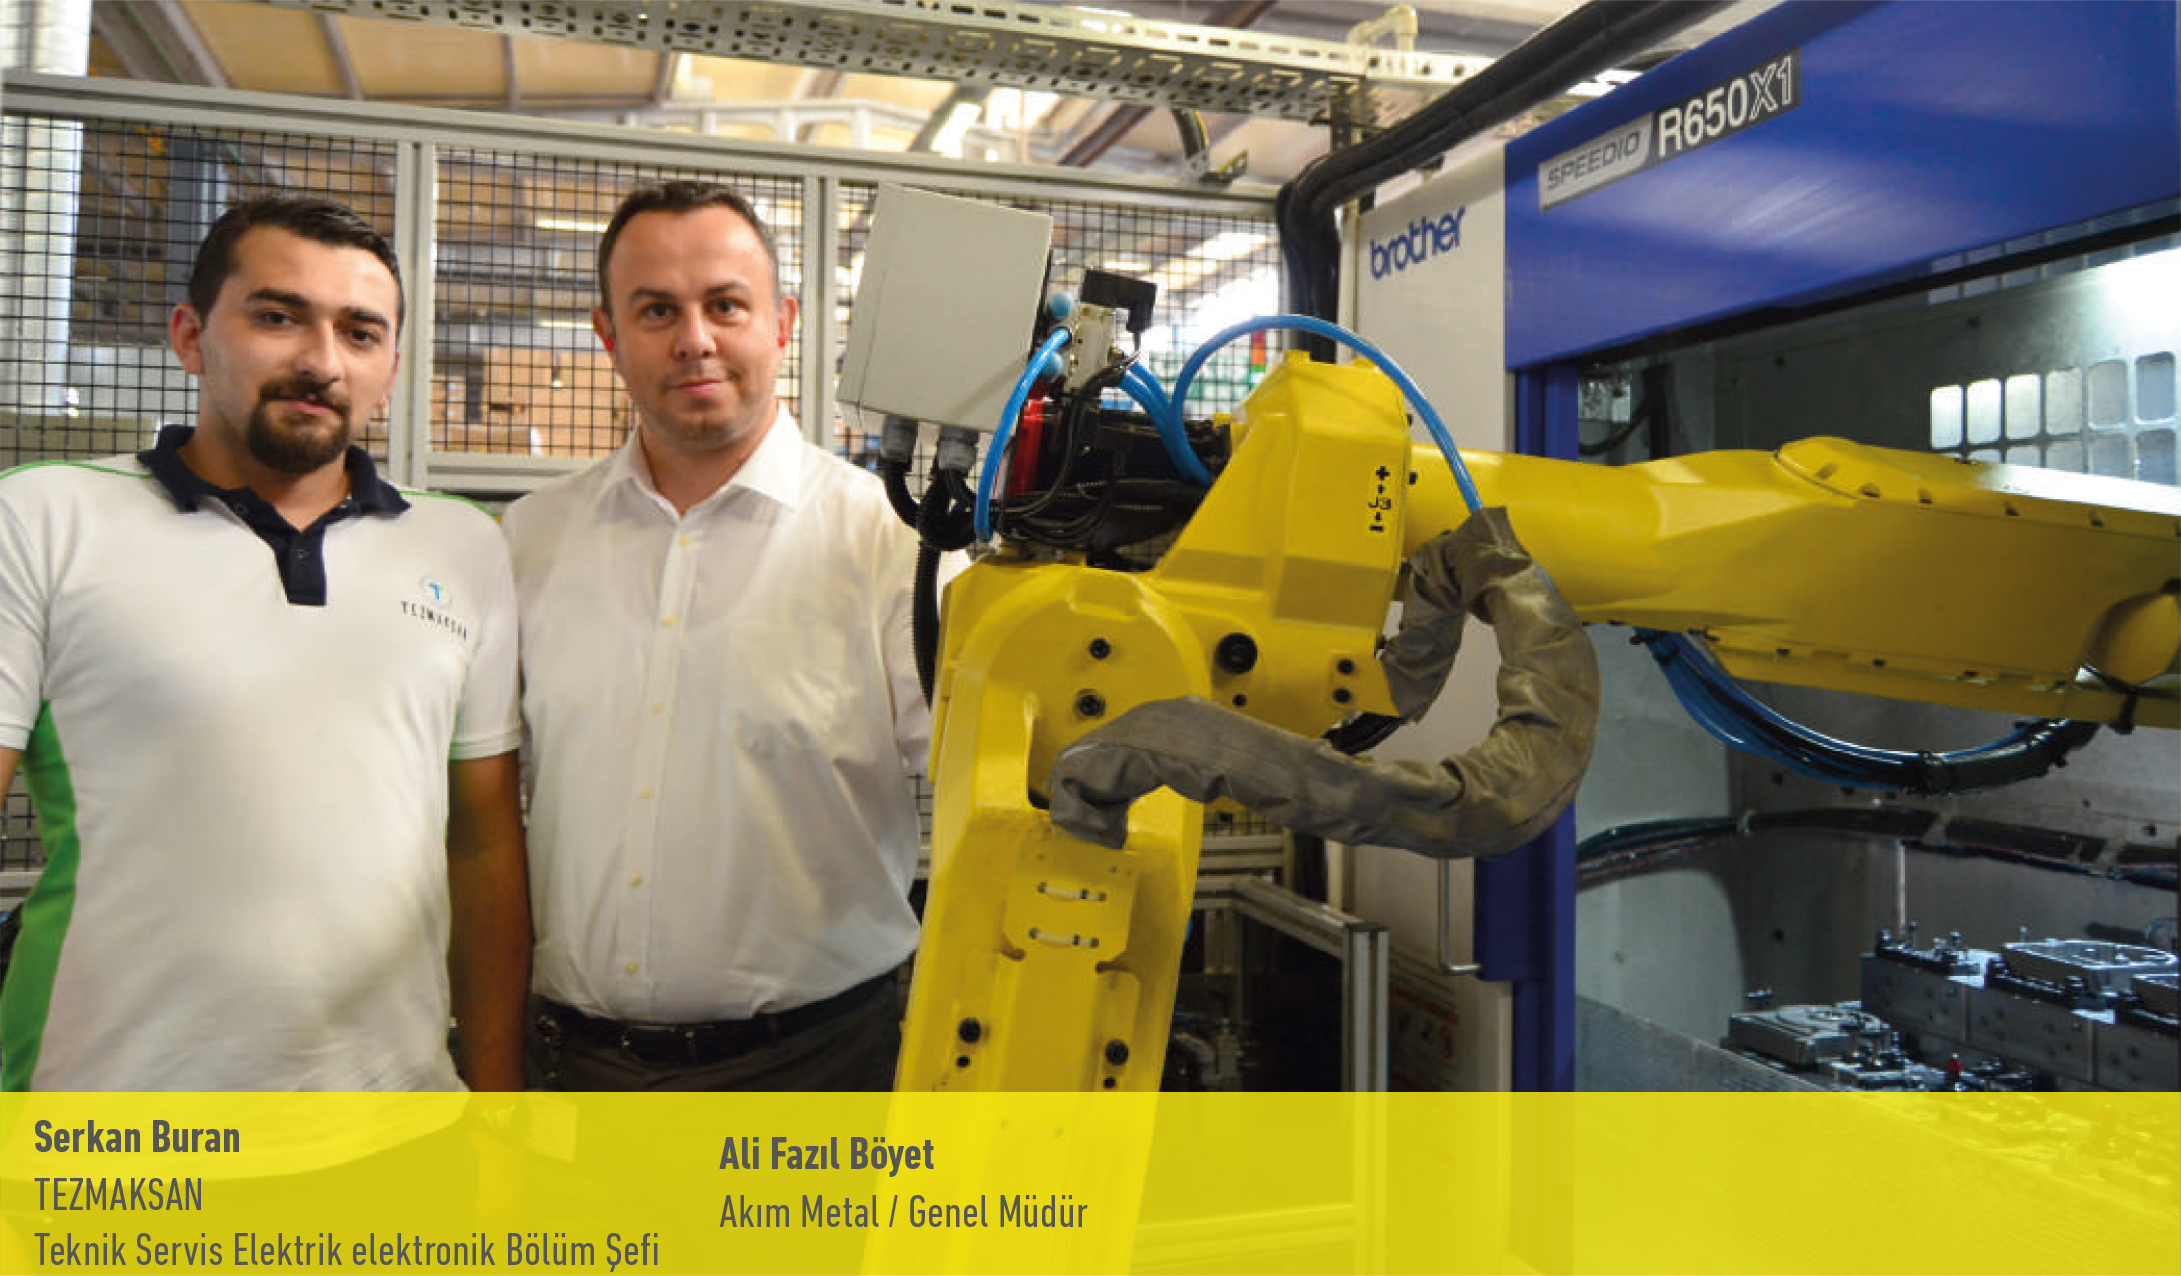 AKIM Metal, doubled its production capacity with robotic automation.